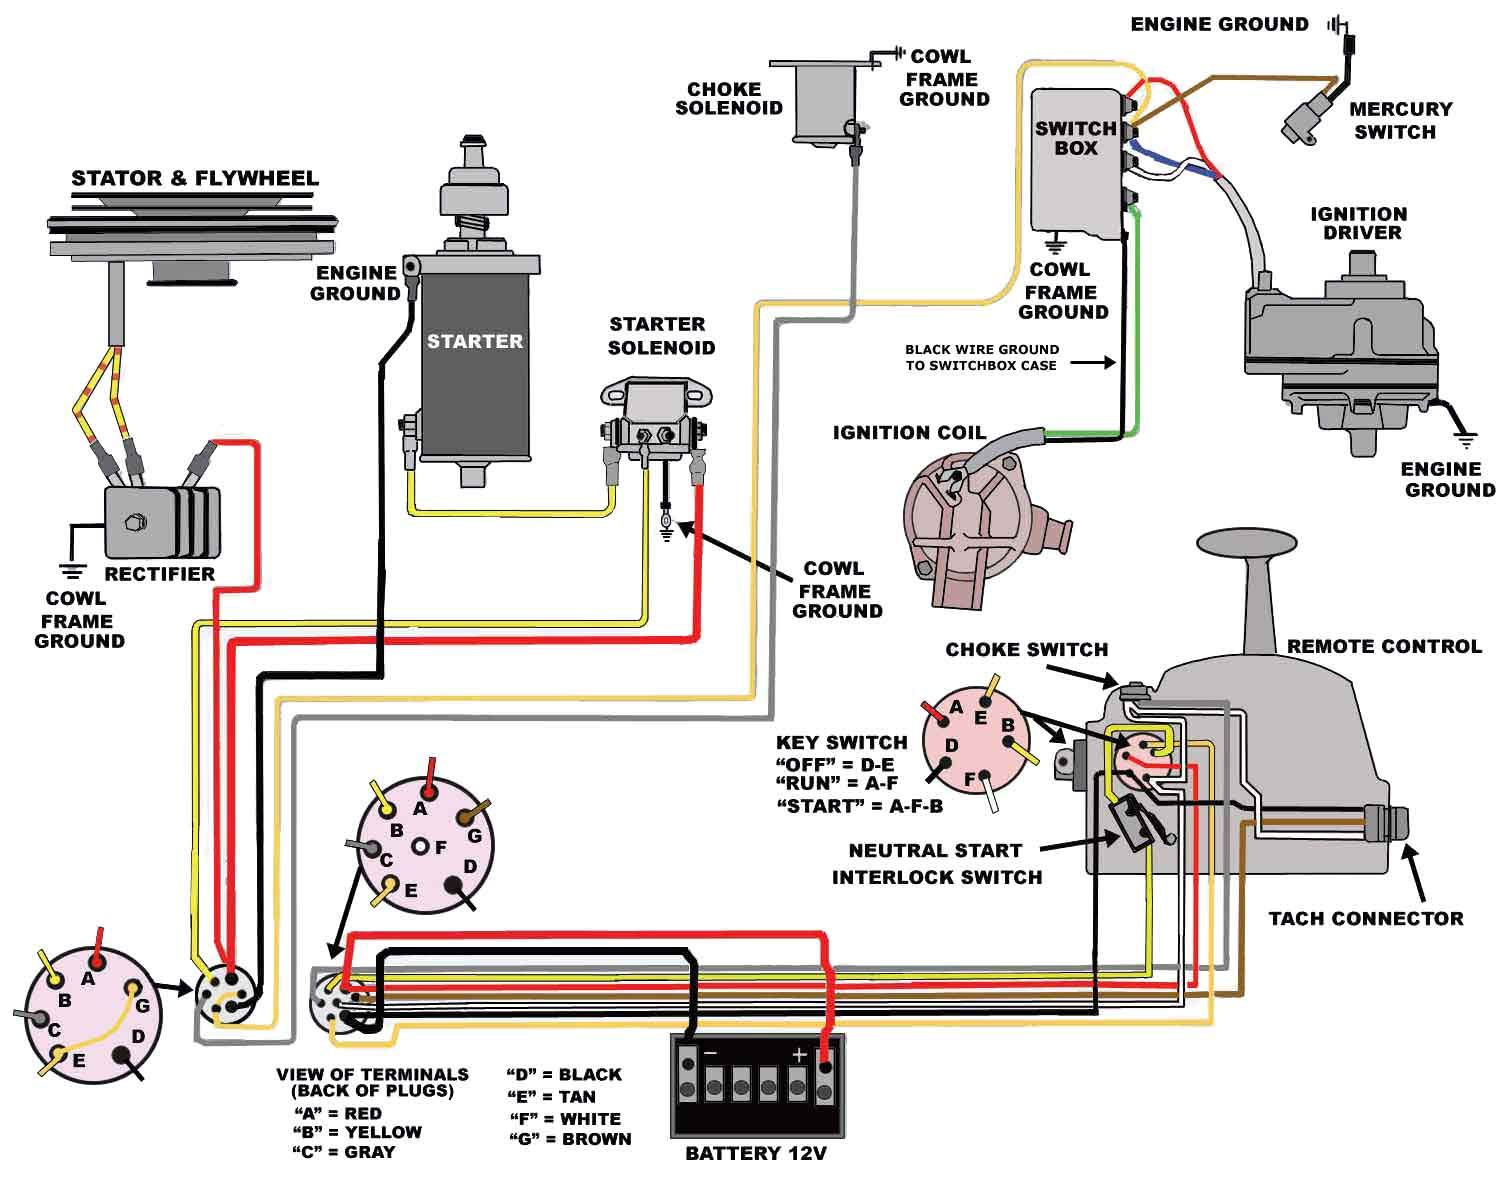 hight resolution of mercury marine wiring diagram schema wiring diagram mercury 850 outboard wiring harness mercury outboard wiring harness